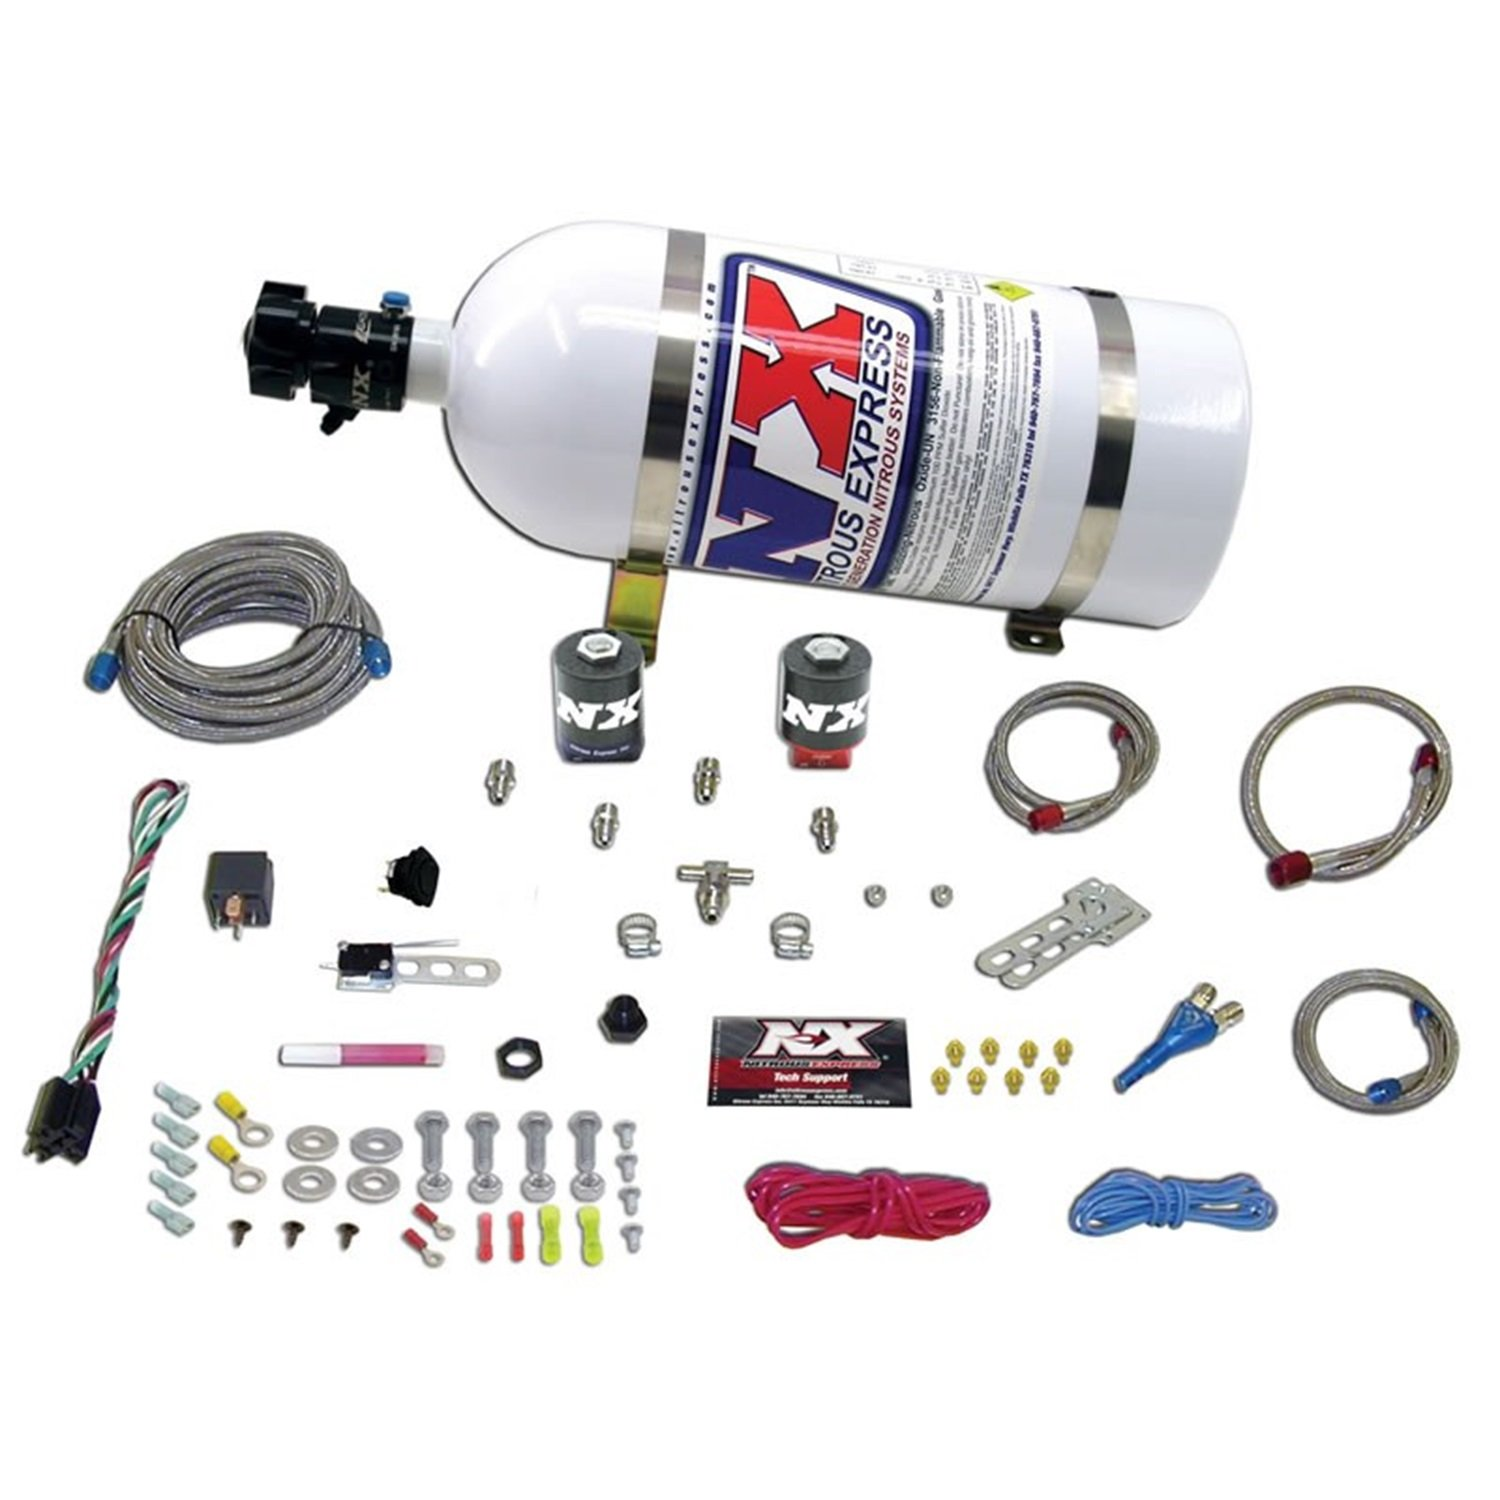 Nitrous Express 20915-10 35-150 HP Universal Single Nozzle System for EFI with 10 lbs. Bottle